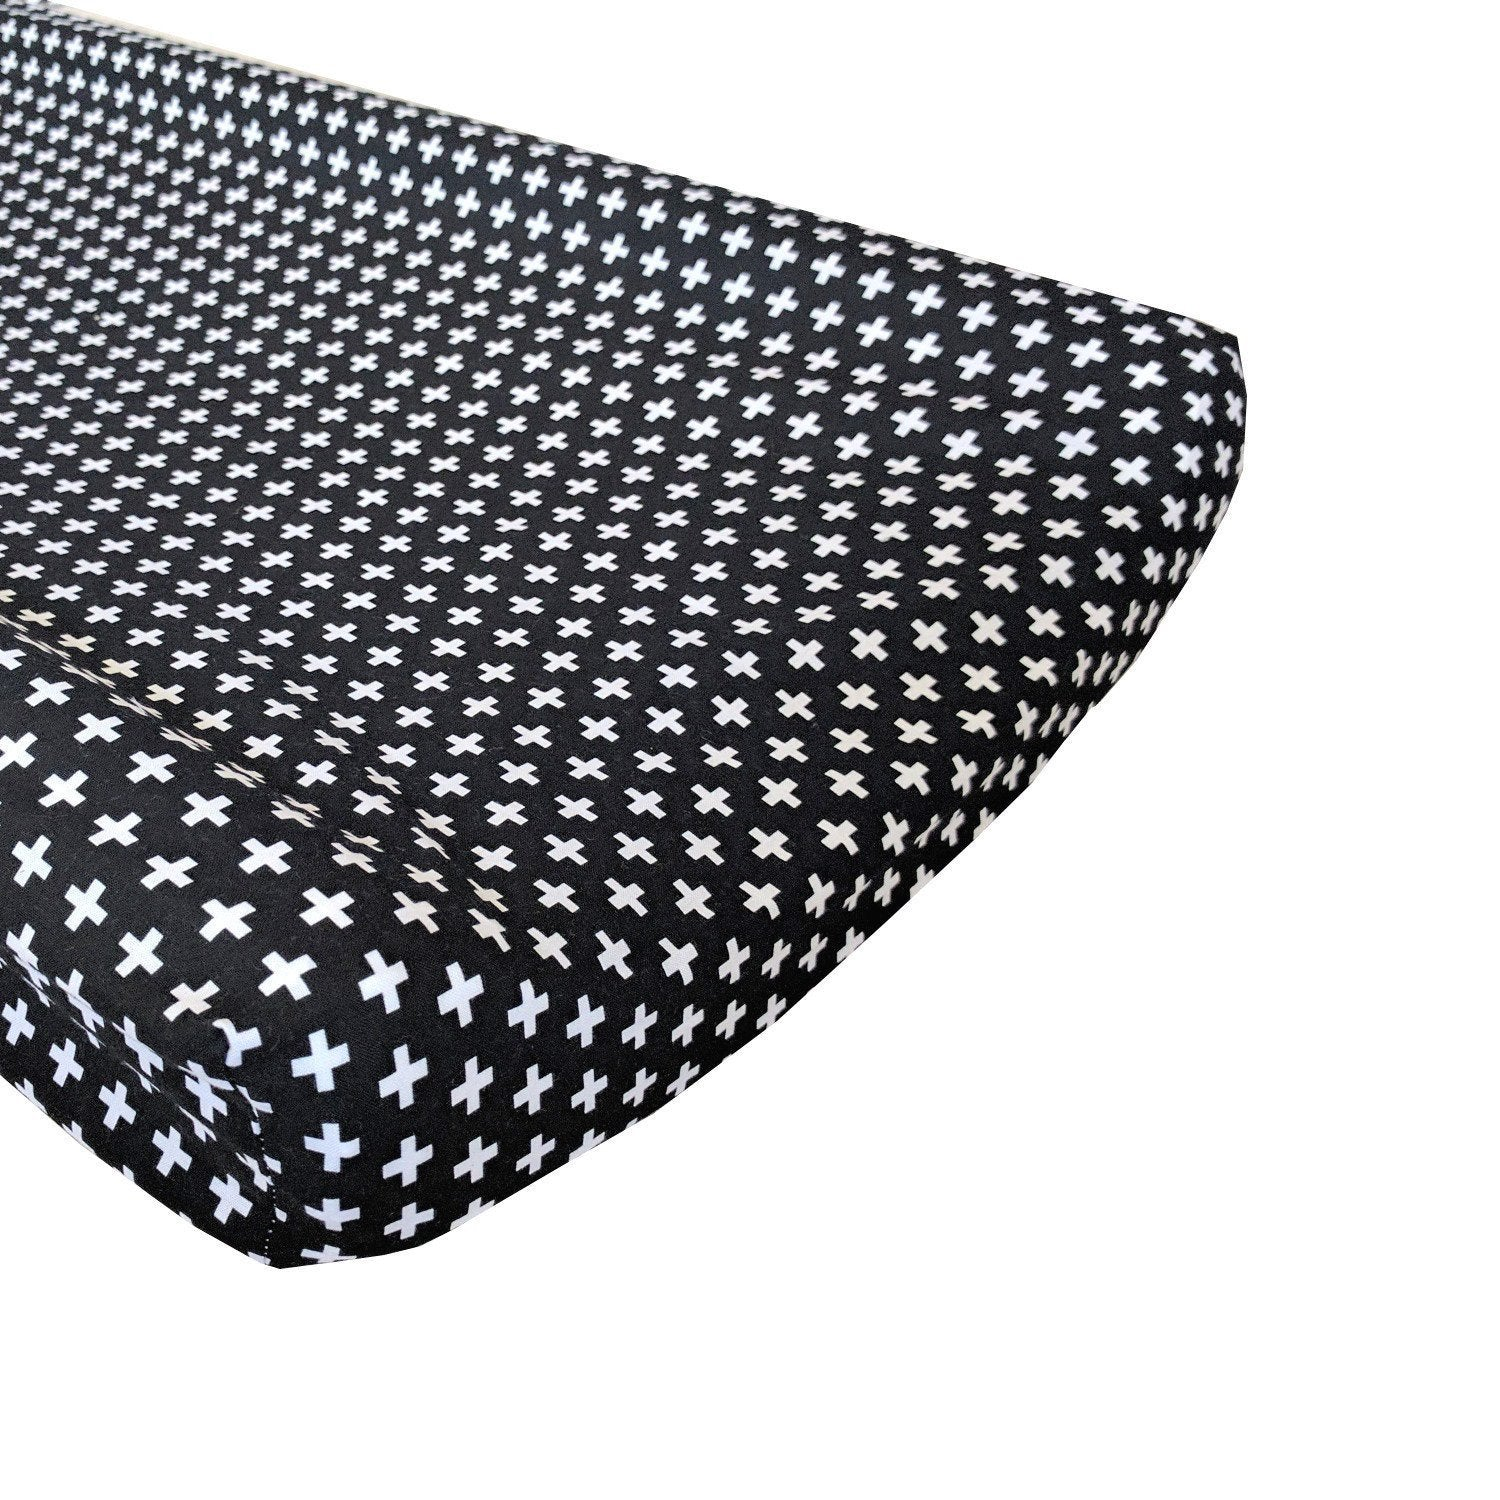 Changing Pad Cover | Black Swiss Cross Black and White-Changing Pad Cover-Default-Jack and Jill Boutique